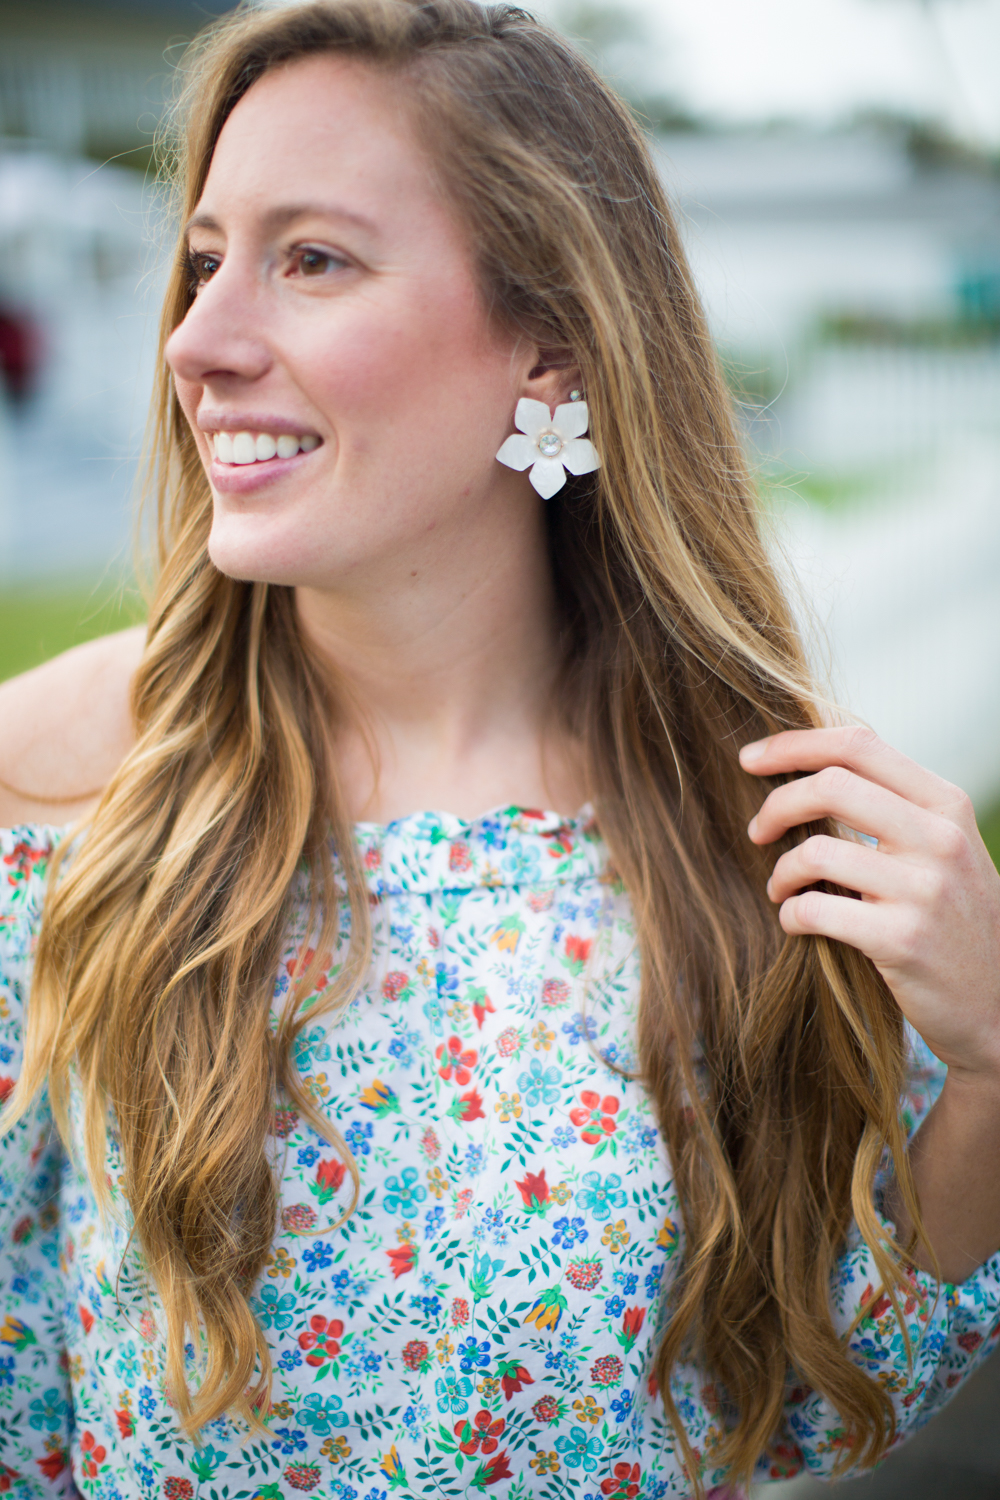 The Cutest Bow Shorts for Spring / An Easy Easter Outfit / Florals for Spring / Spring Outfit Inspiration / Sugarfix x Baublebar Flower Earrings - Sunshine Style